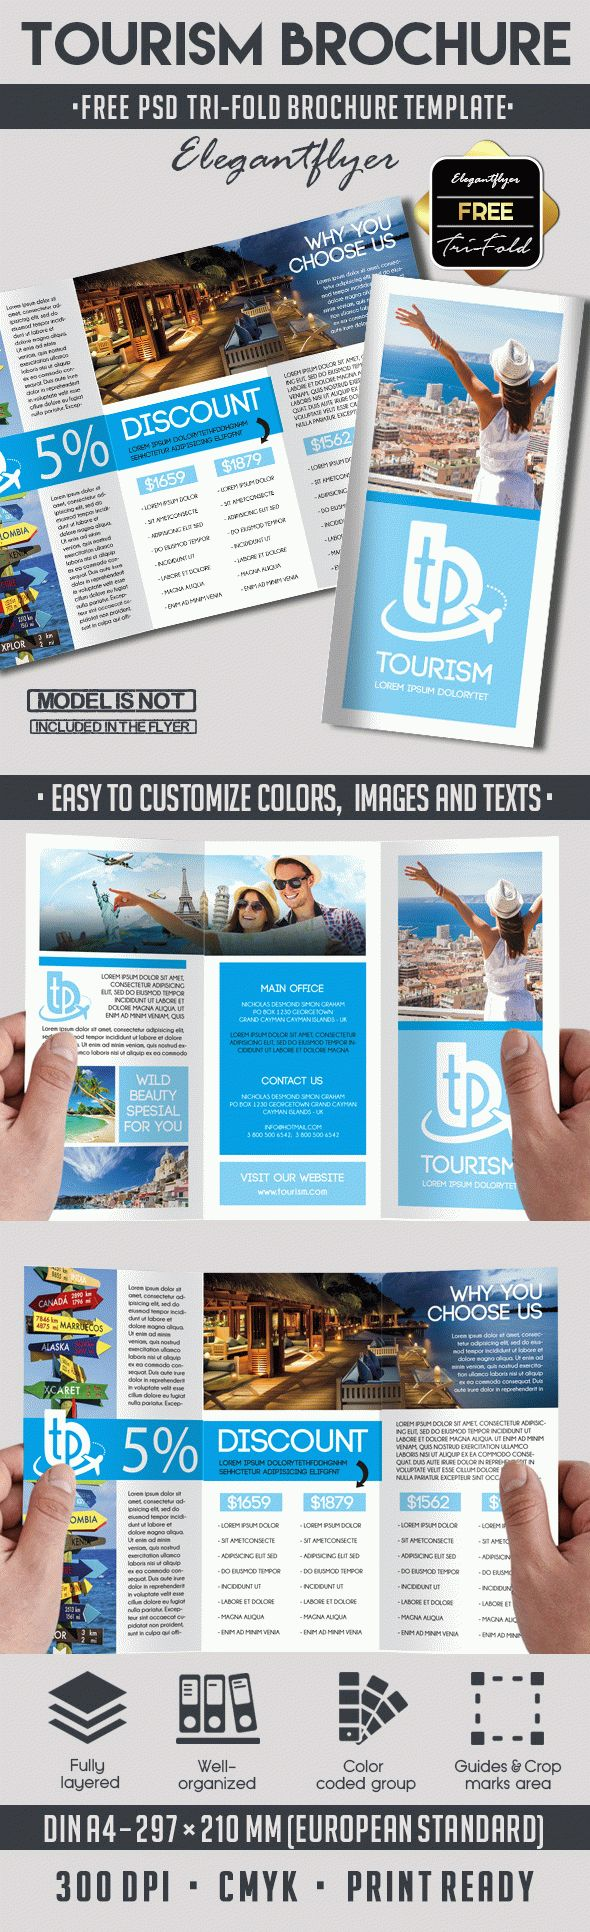 Tourism free psd tri fold psd brochure template by for Tri fold brochure template psd